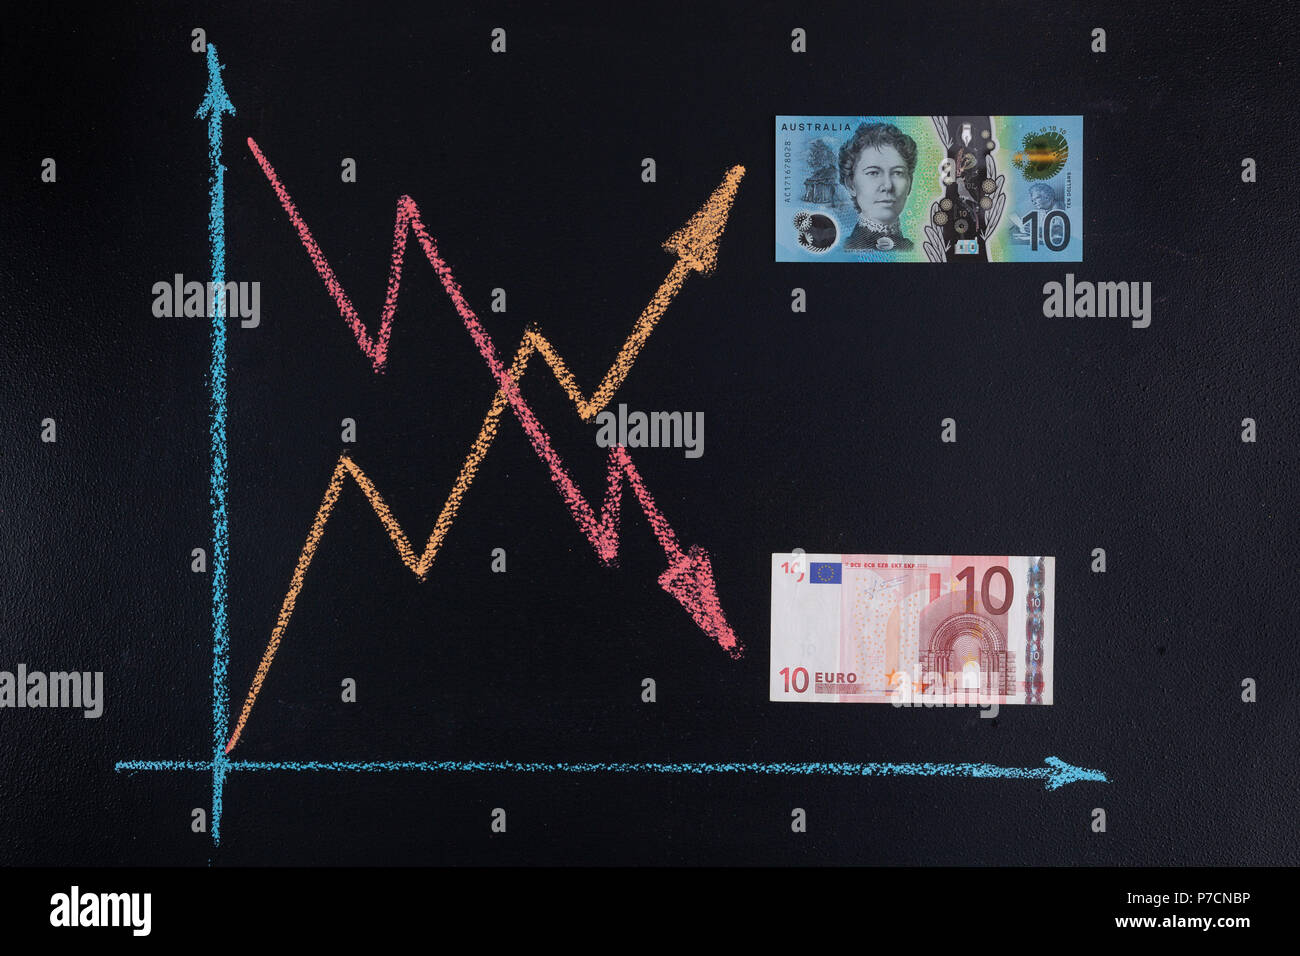 Forex currency trends concept - EUR going down while AUD going up. Depicted with chalkboard line graph and paper currency. - Stock Image